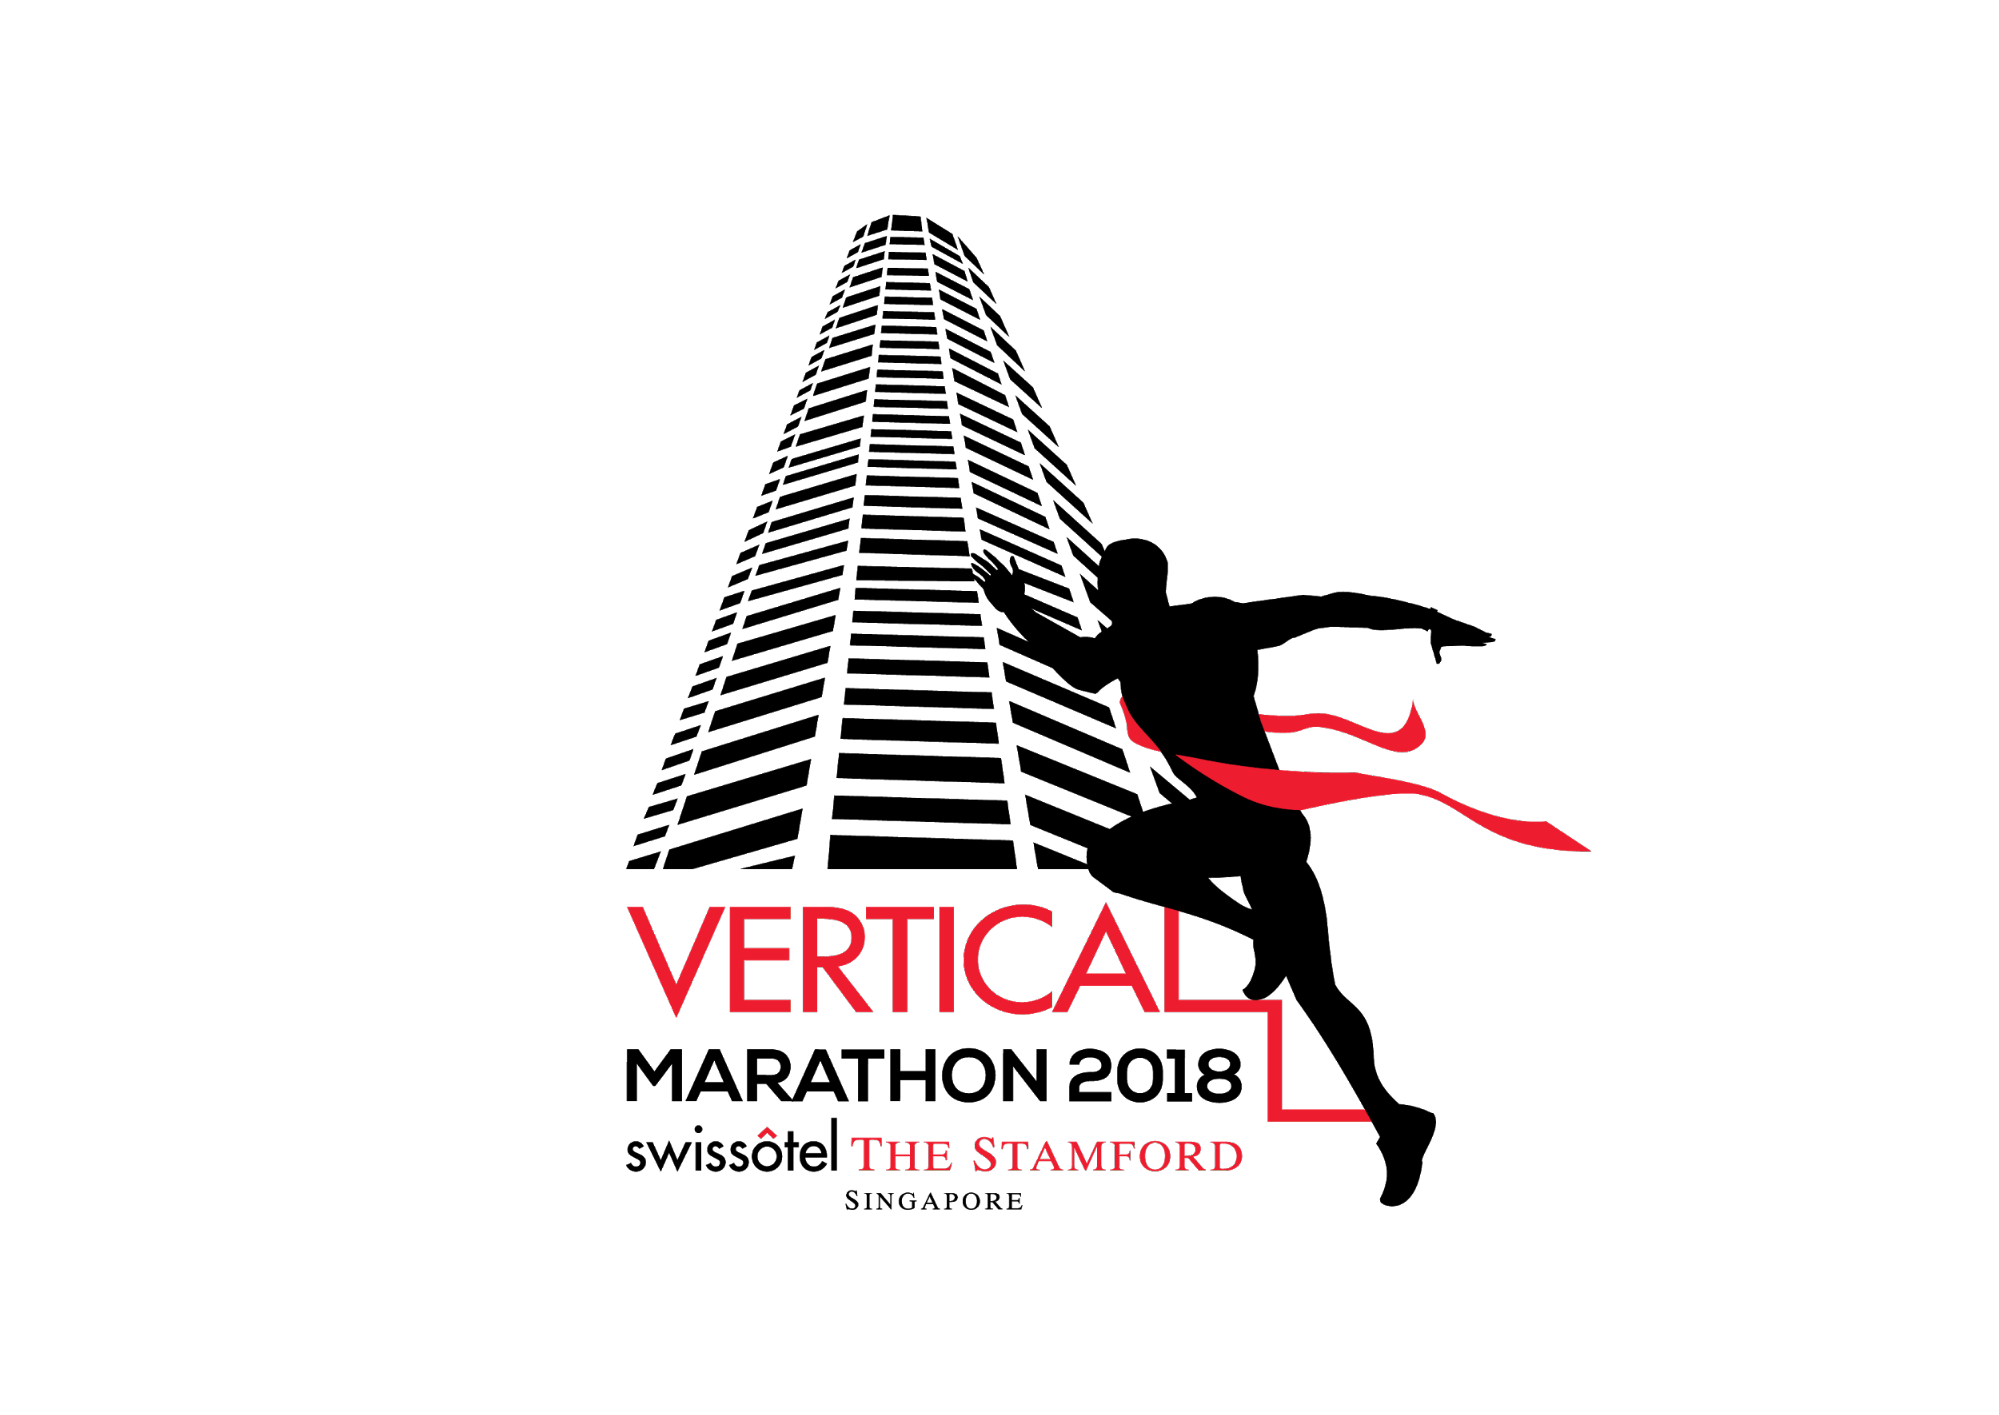 vertical marathon swissotel the stamford 2018 - finish line logo singapore